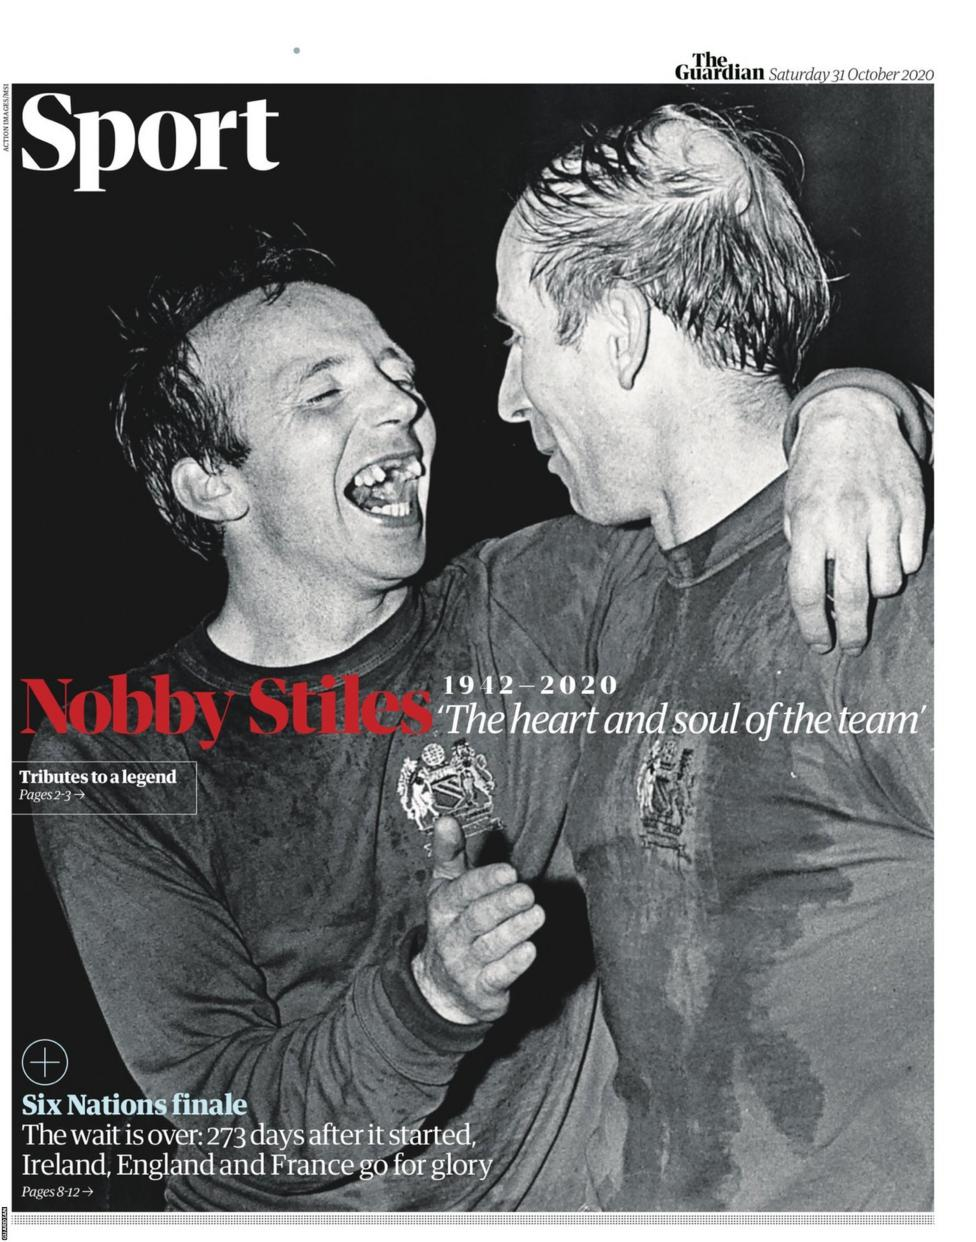 Newspaper Headline: 'Nobby Stiles: The Heart and Soul of the Team'